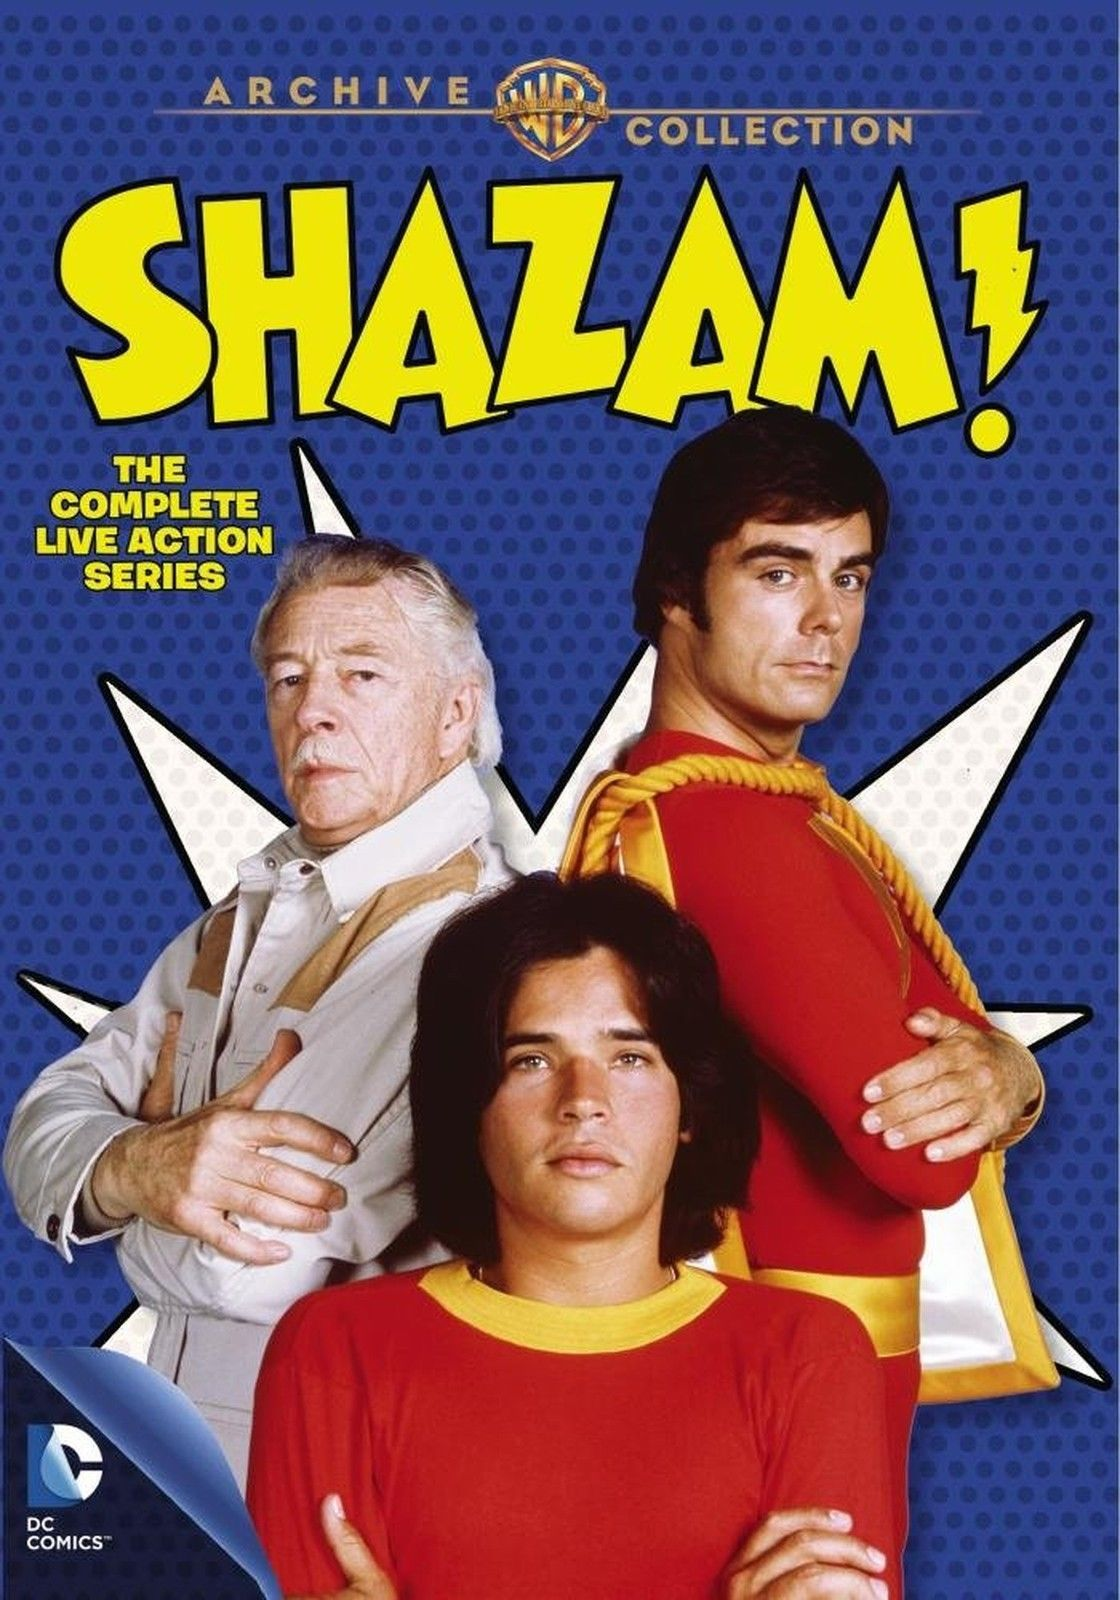 Shazam! The Complete Live Action Series (DVD Set) New Classic TV Show